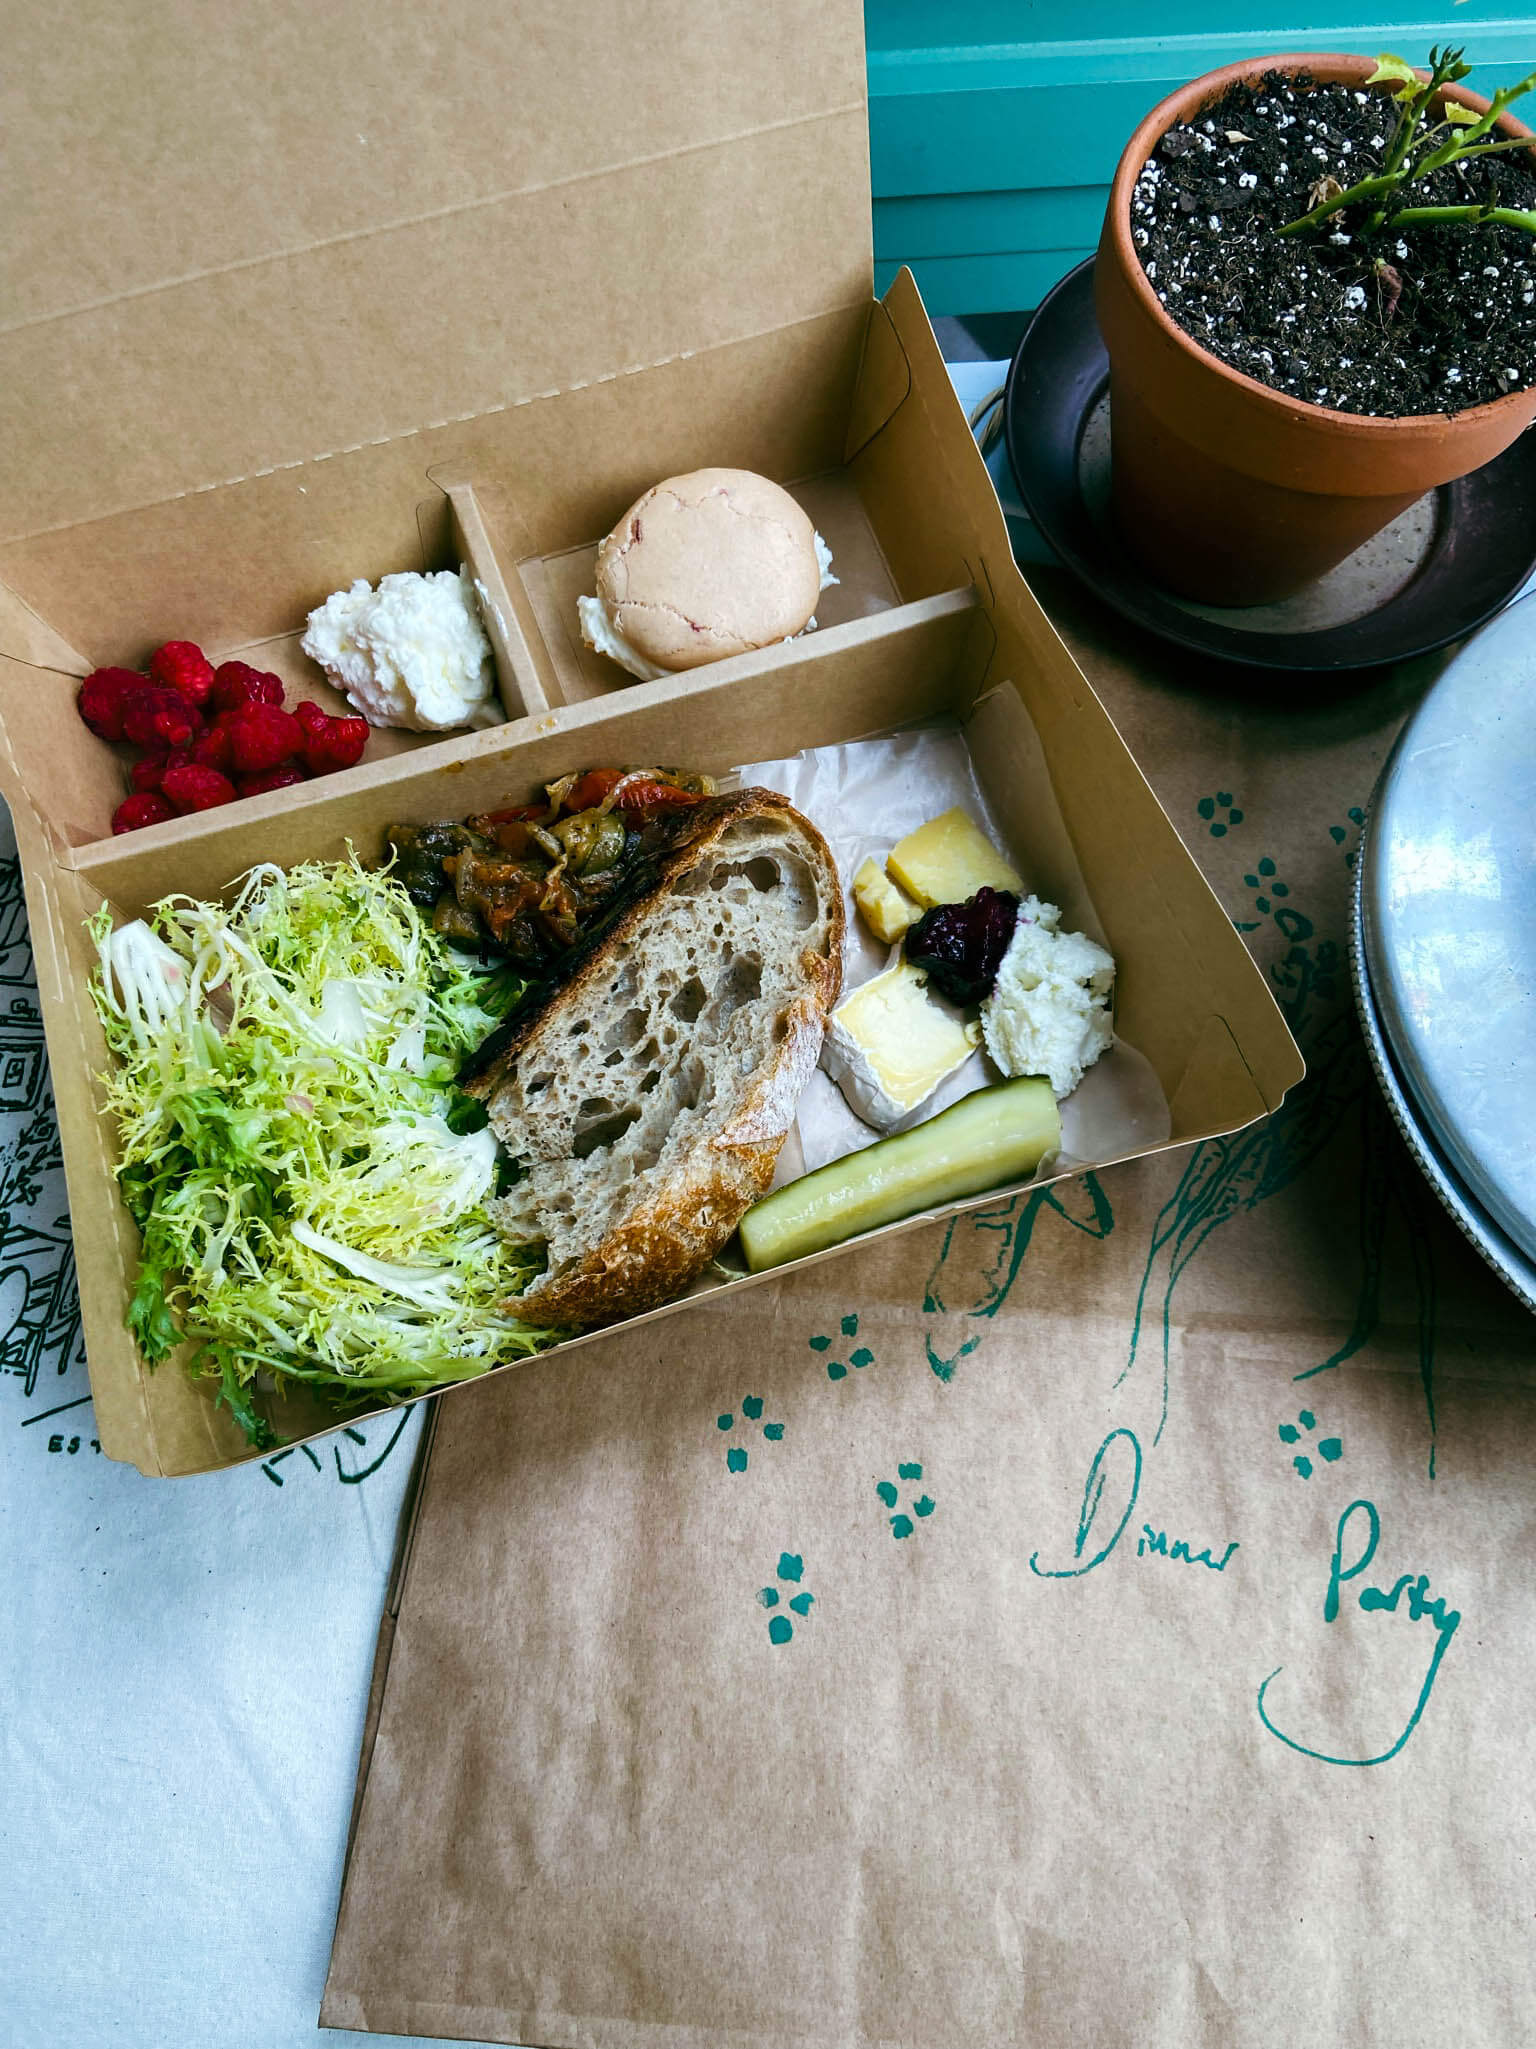 A salad picnic box from Dinner Party.